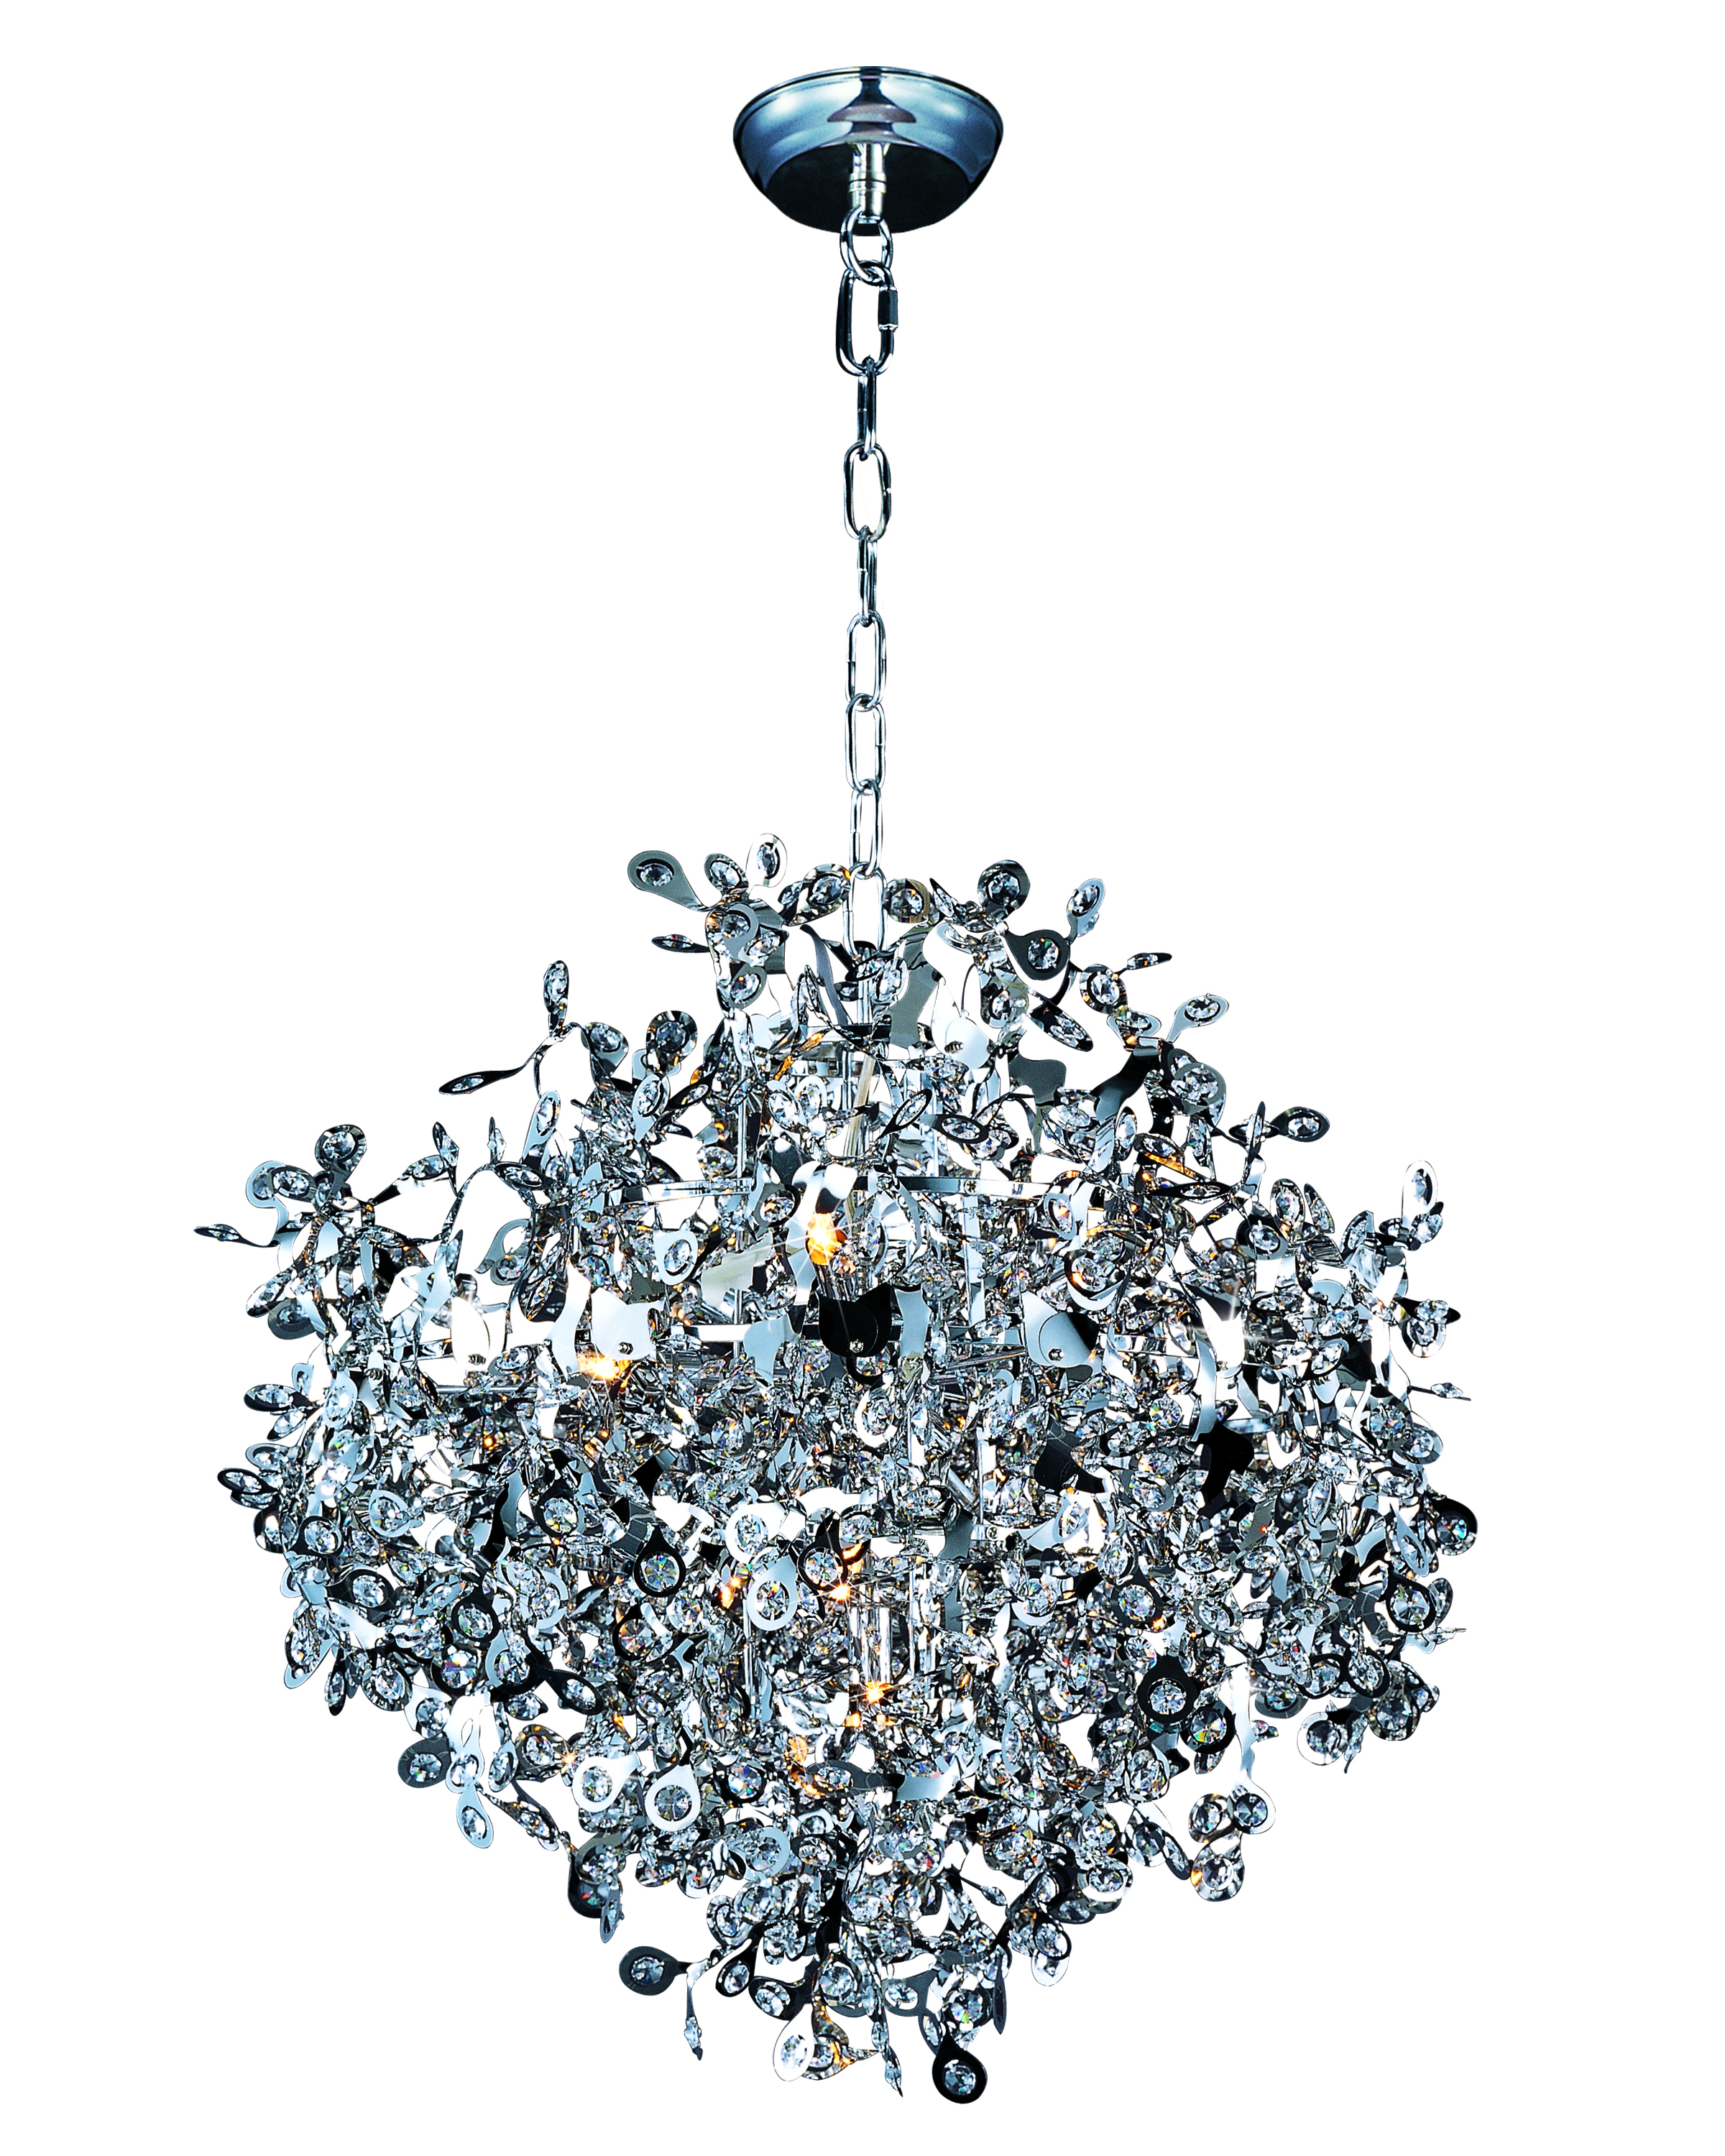 Comet 10-light pendant